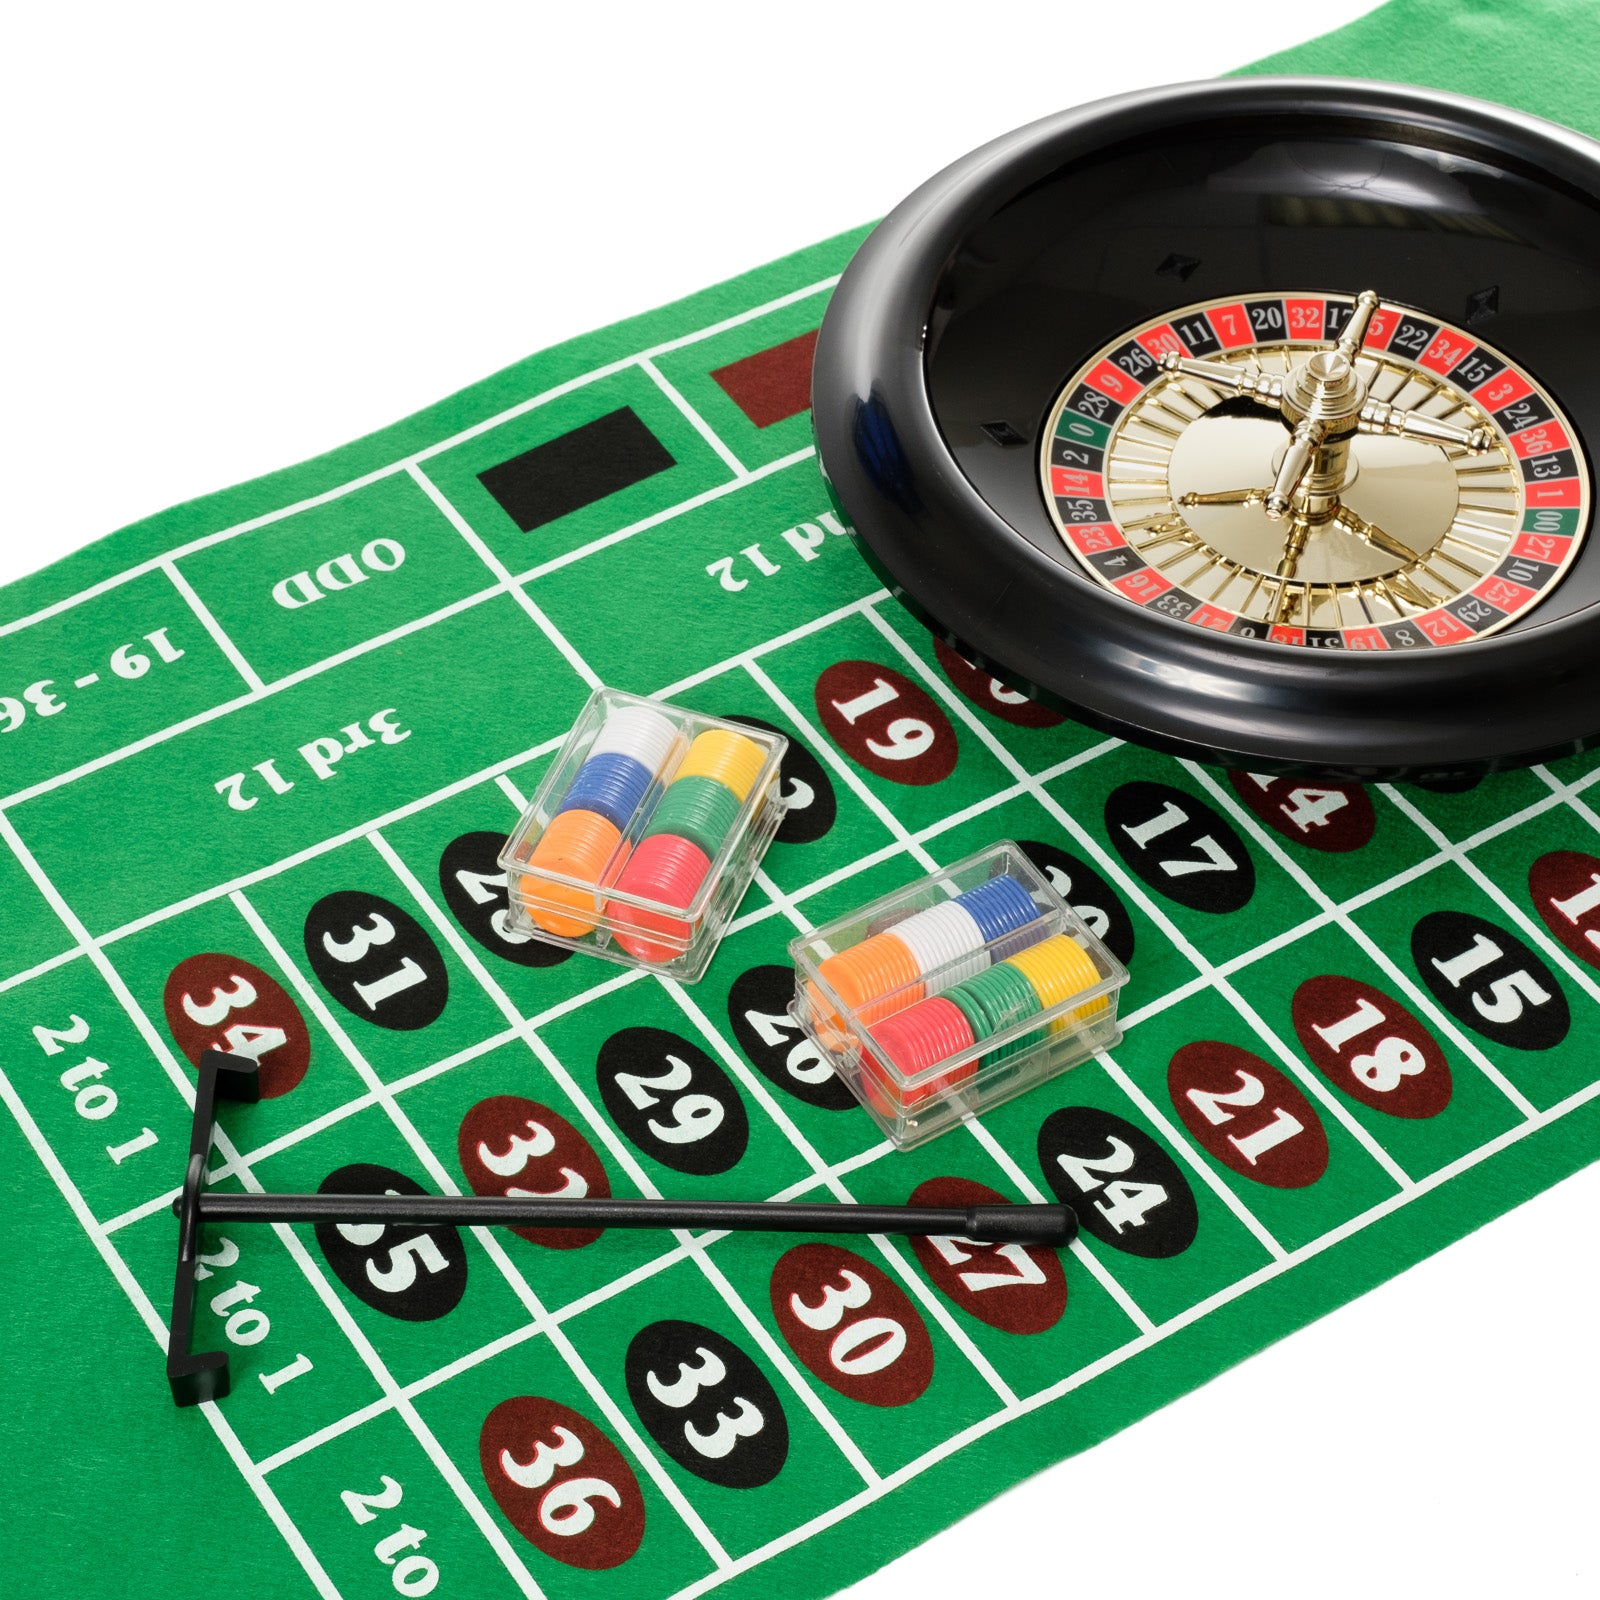 Roulette number sets when can you raise in poker